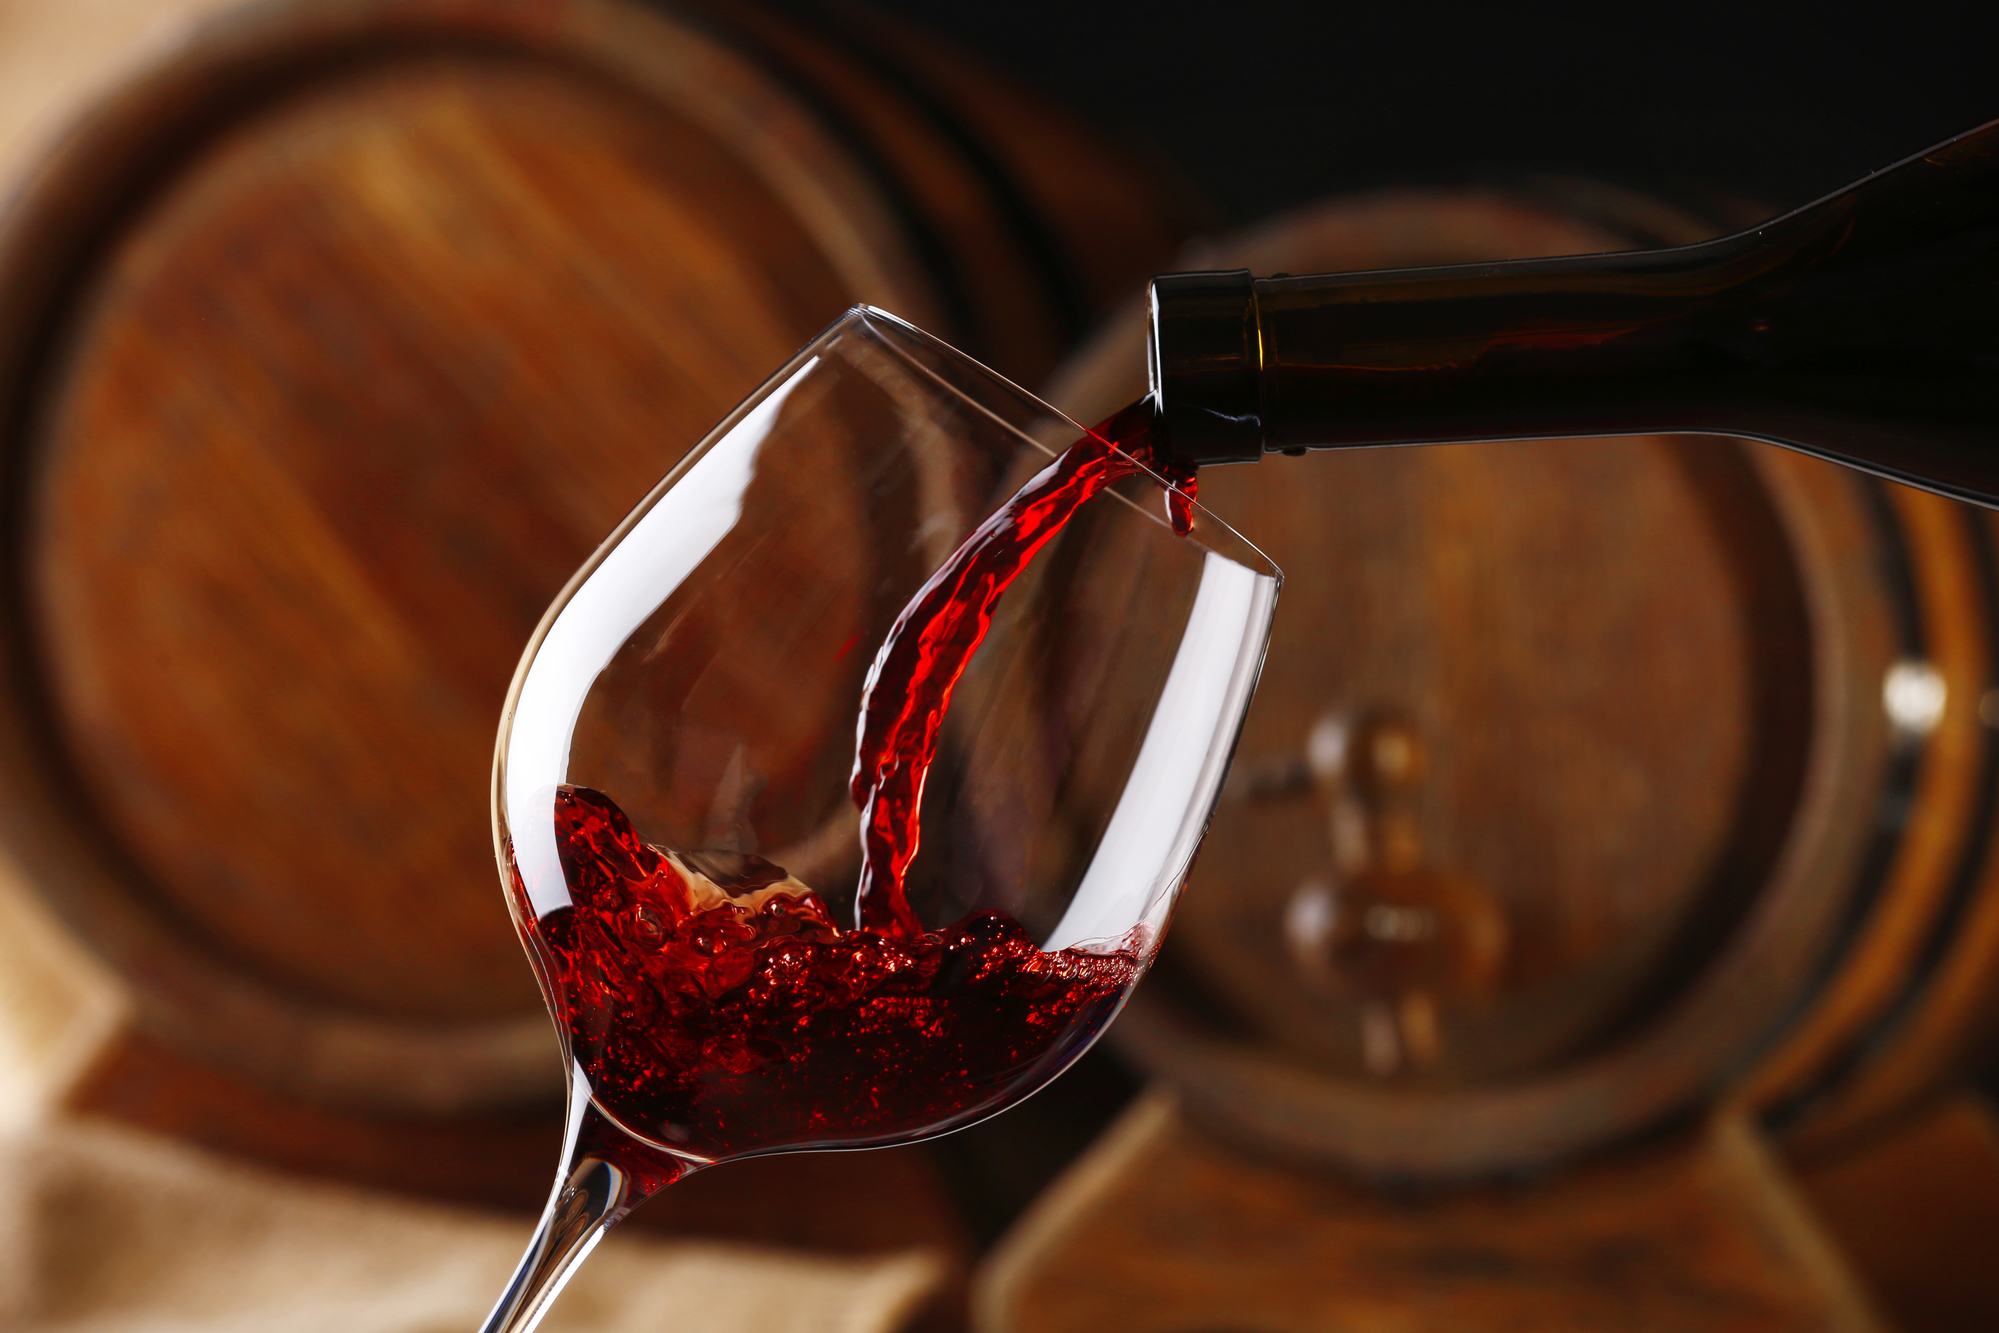 Pouring red wine from bottle into glass with wooden wine casks on background - by Doug Cook RD